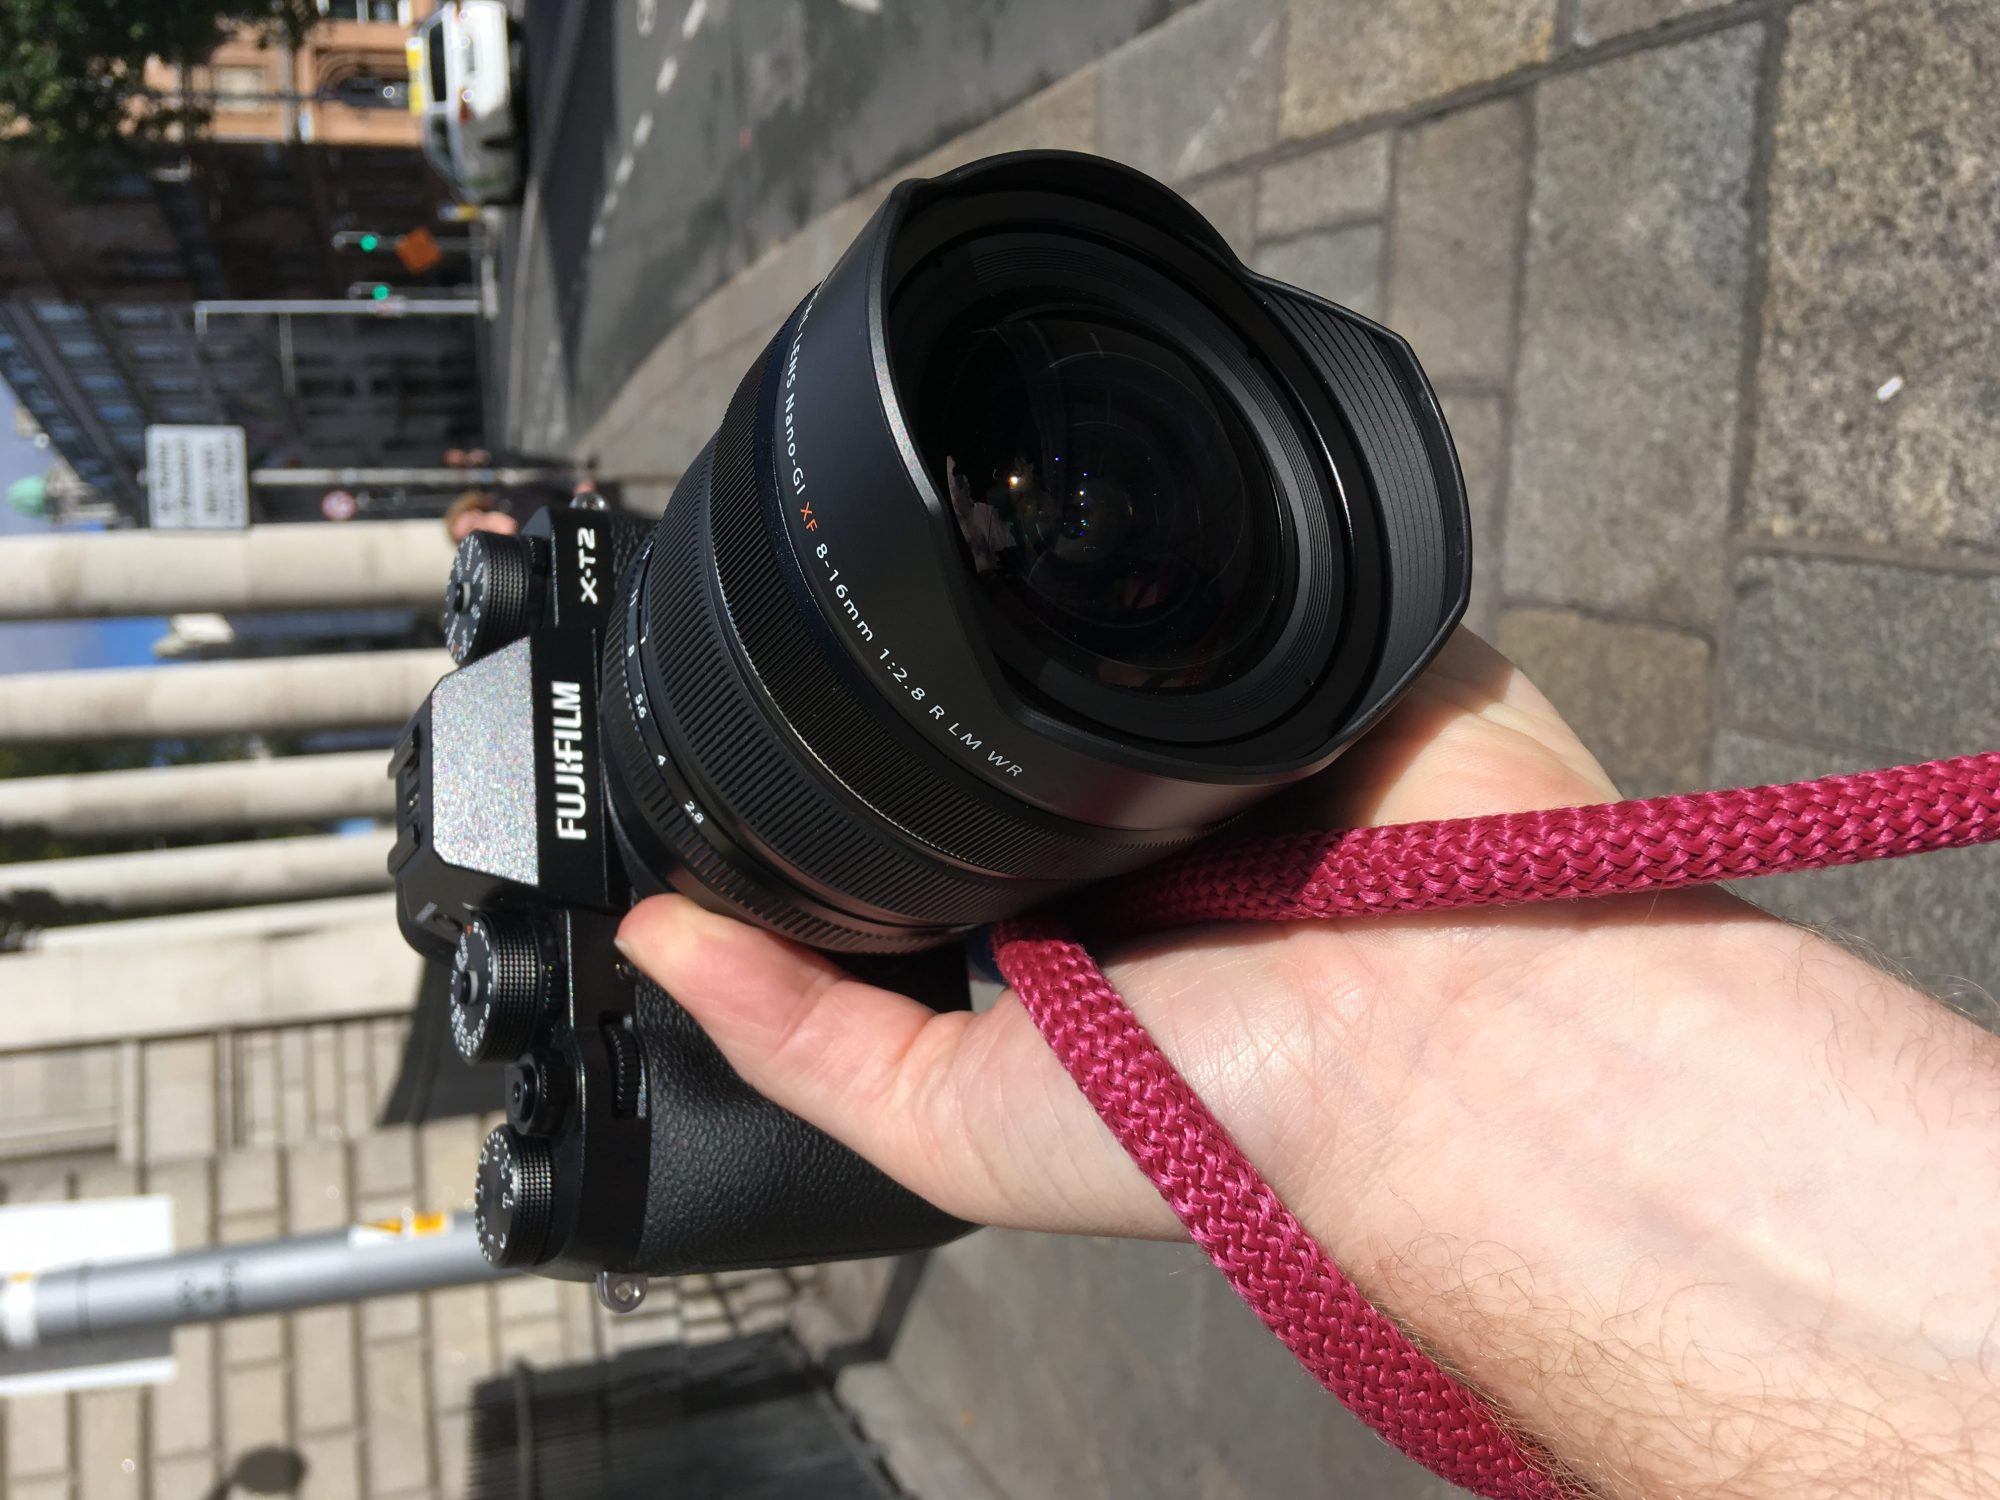 The Wide One We Have Been Waiting For – Fujifilm XF 8-16mm F/2.8 WR